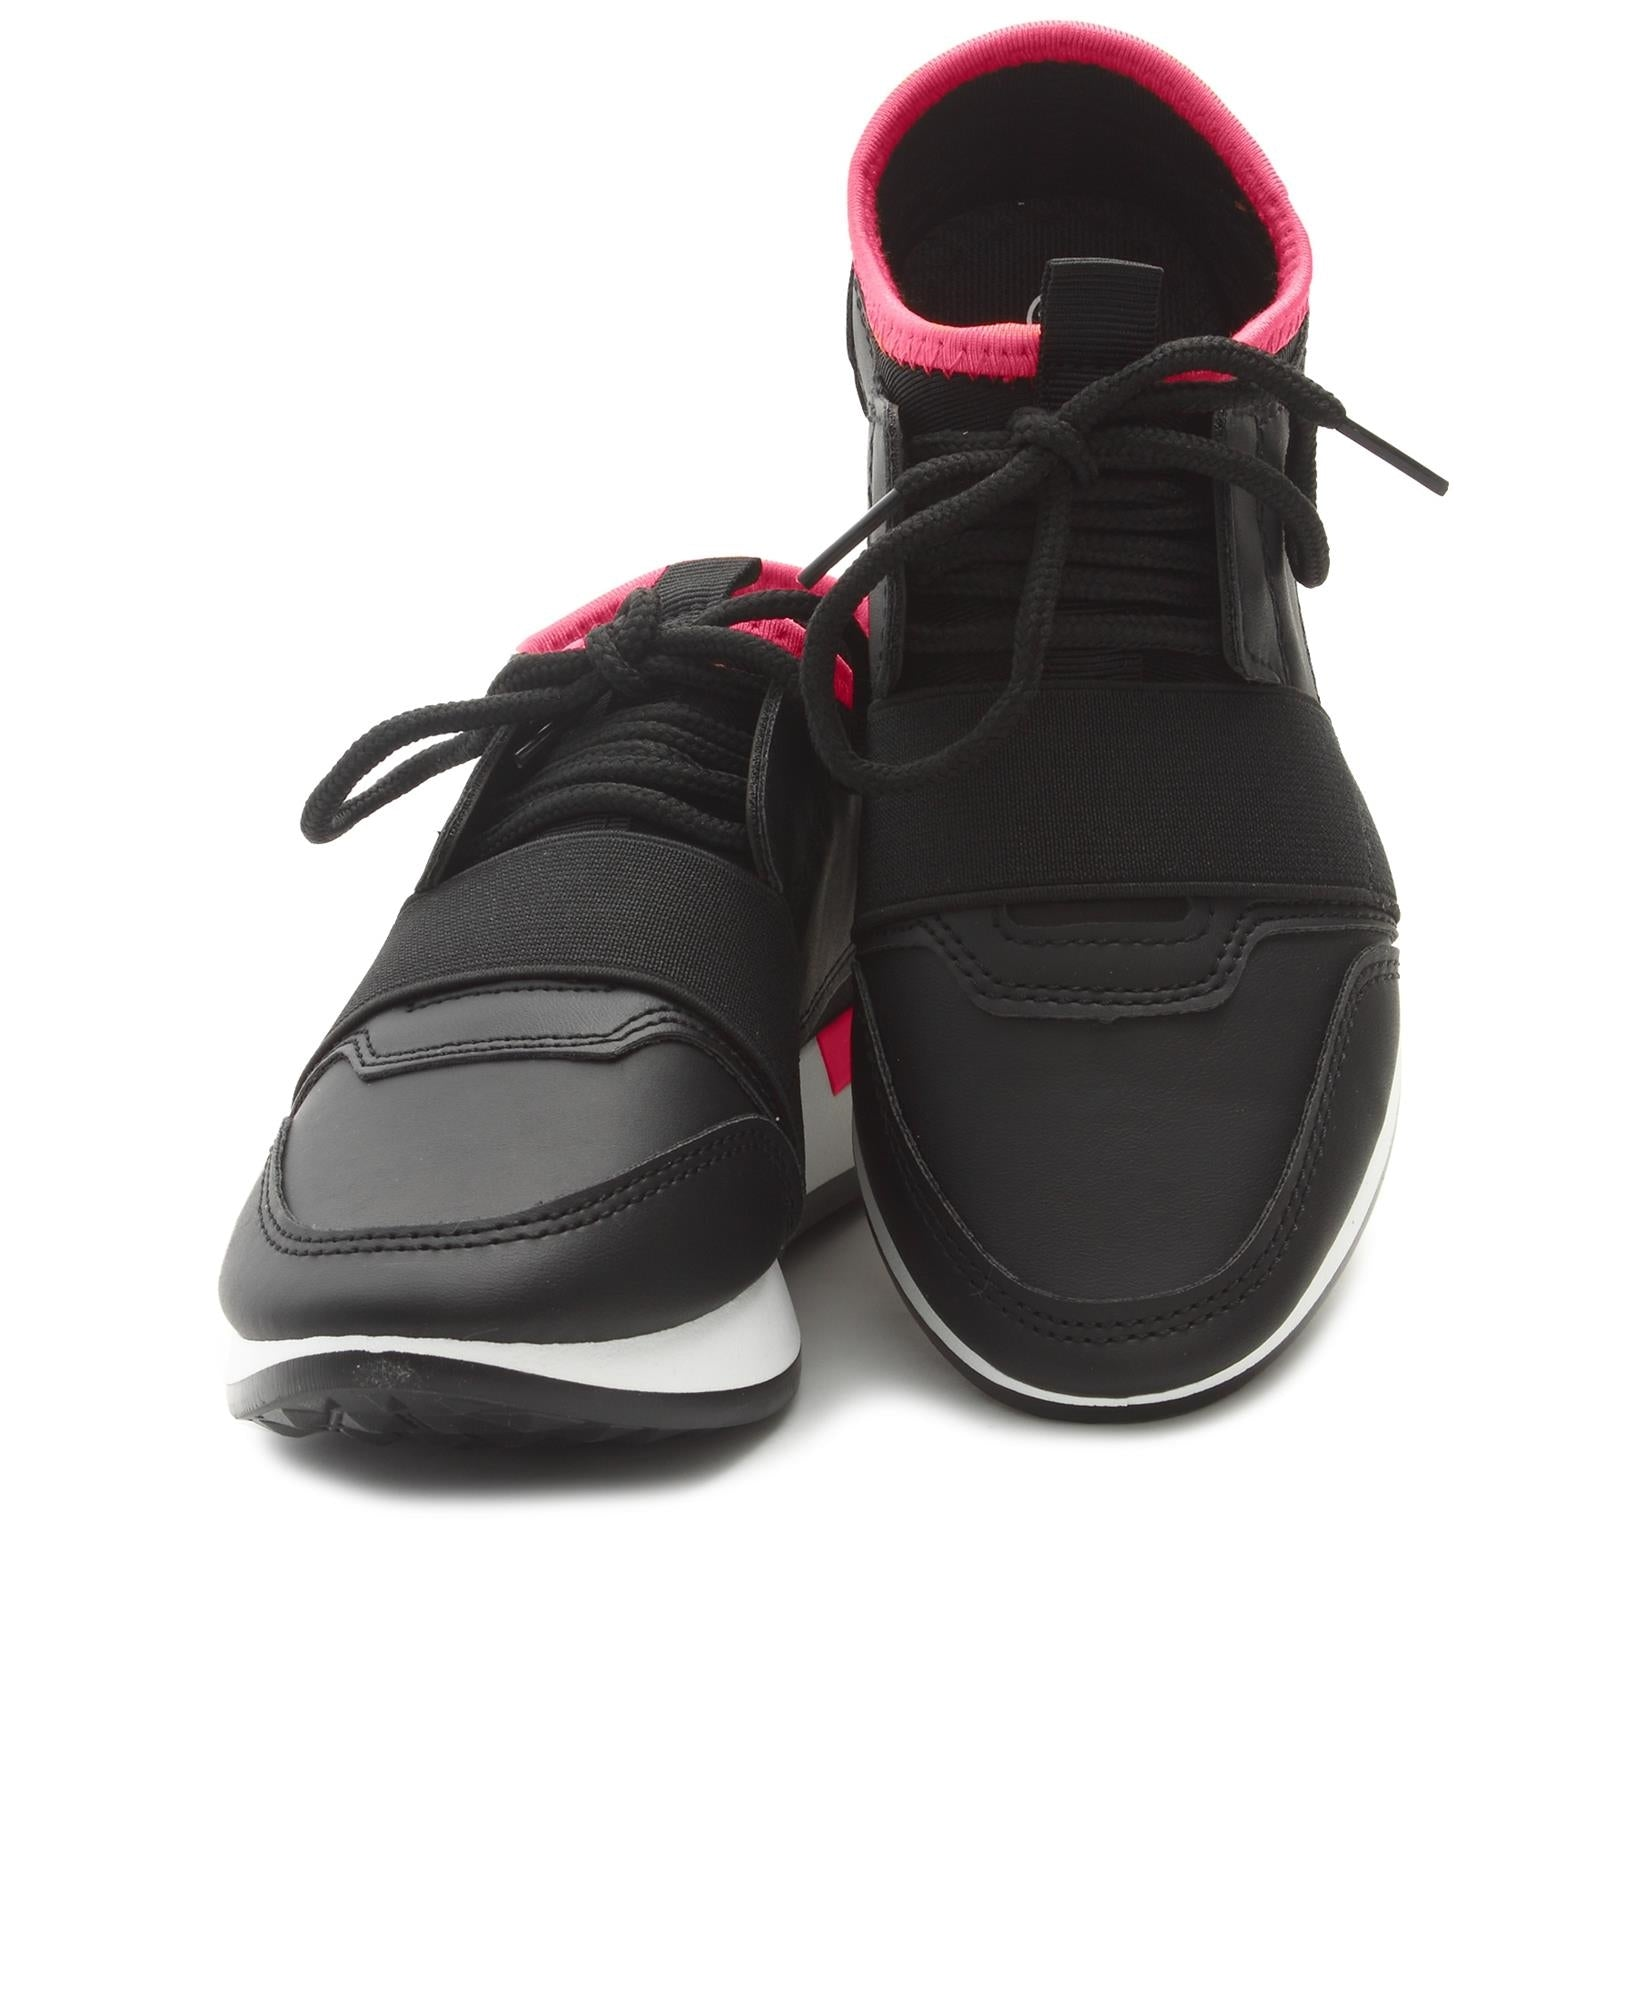 Girls Storm Funky Sneakers - Pink